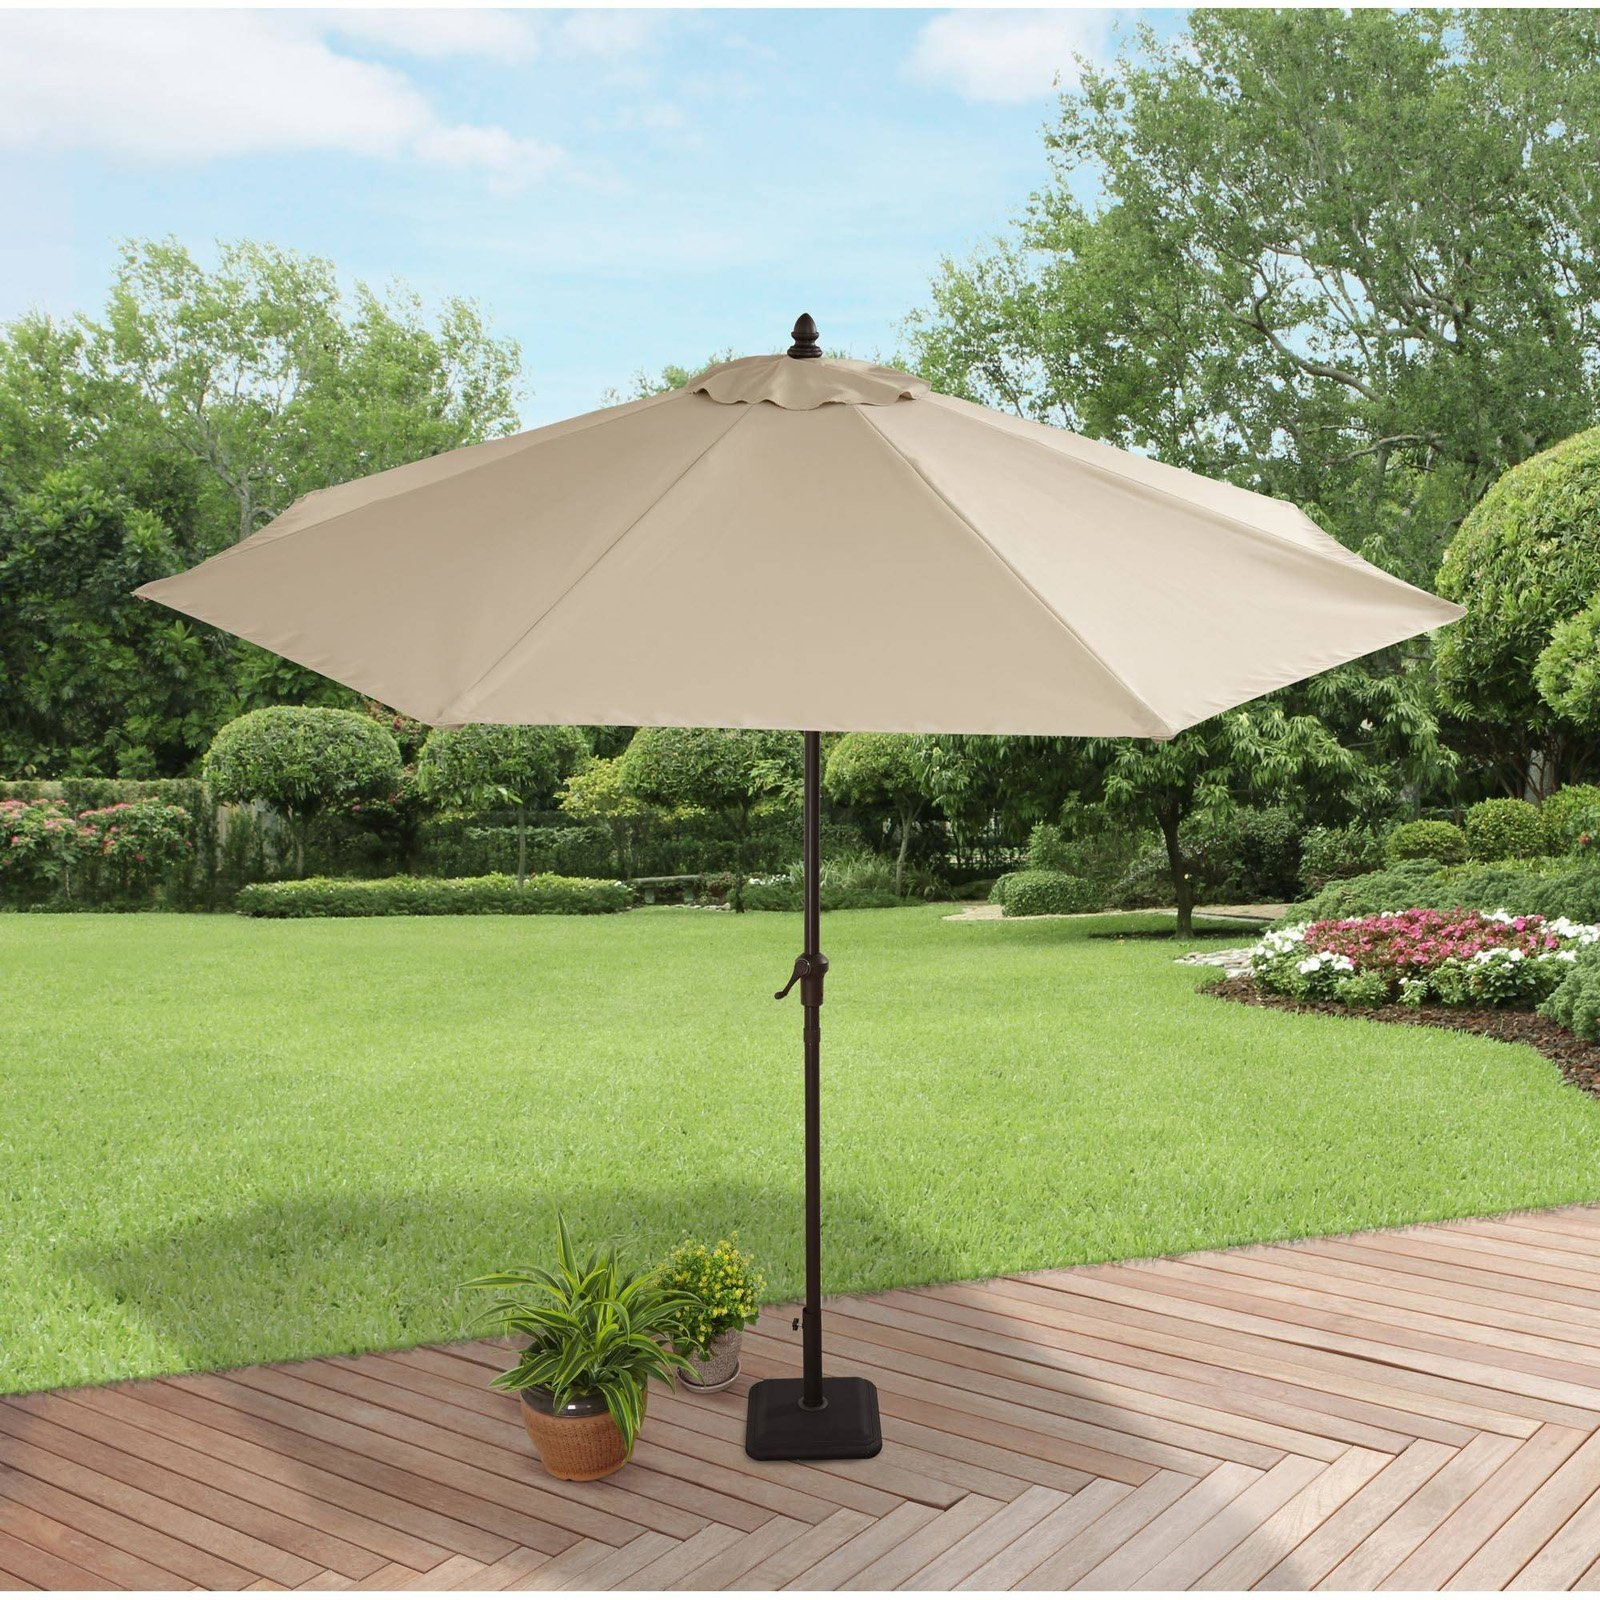 Rectangular Garden Parasol Patio Large Outdoor Market Umbrella Green Rugs Home, Furniture & DIY